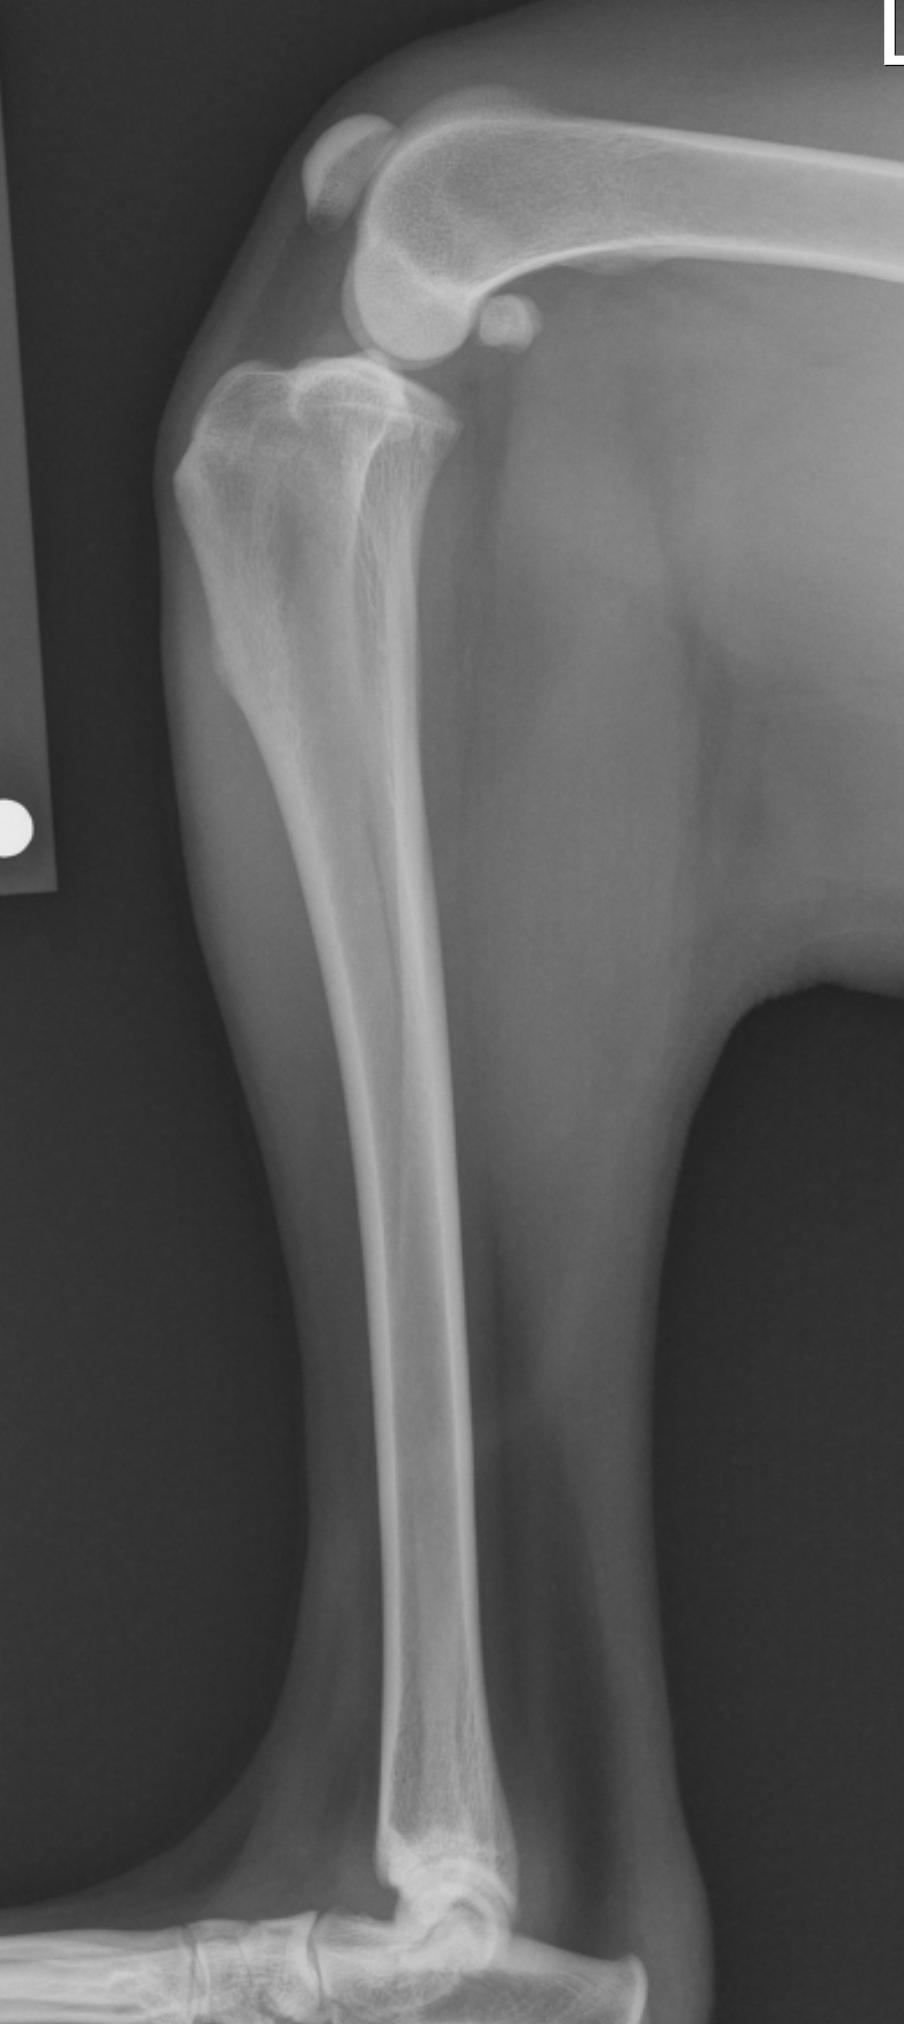 Tplo A Veterinarian S Perspective